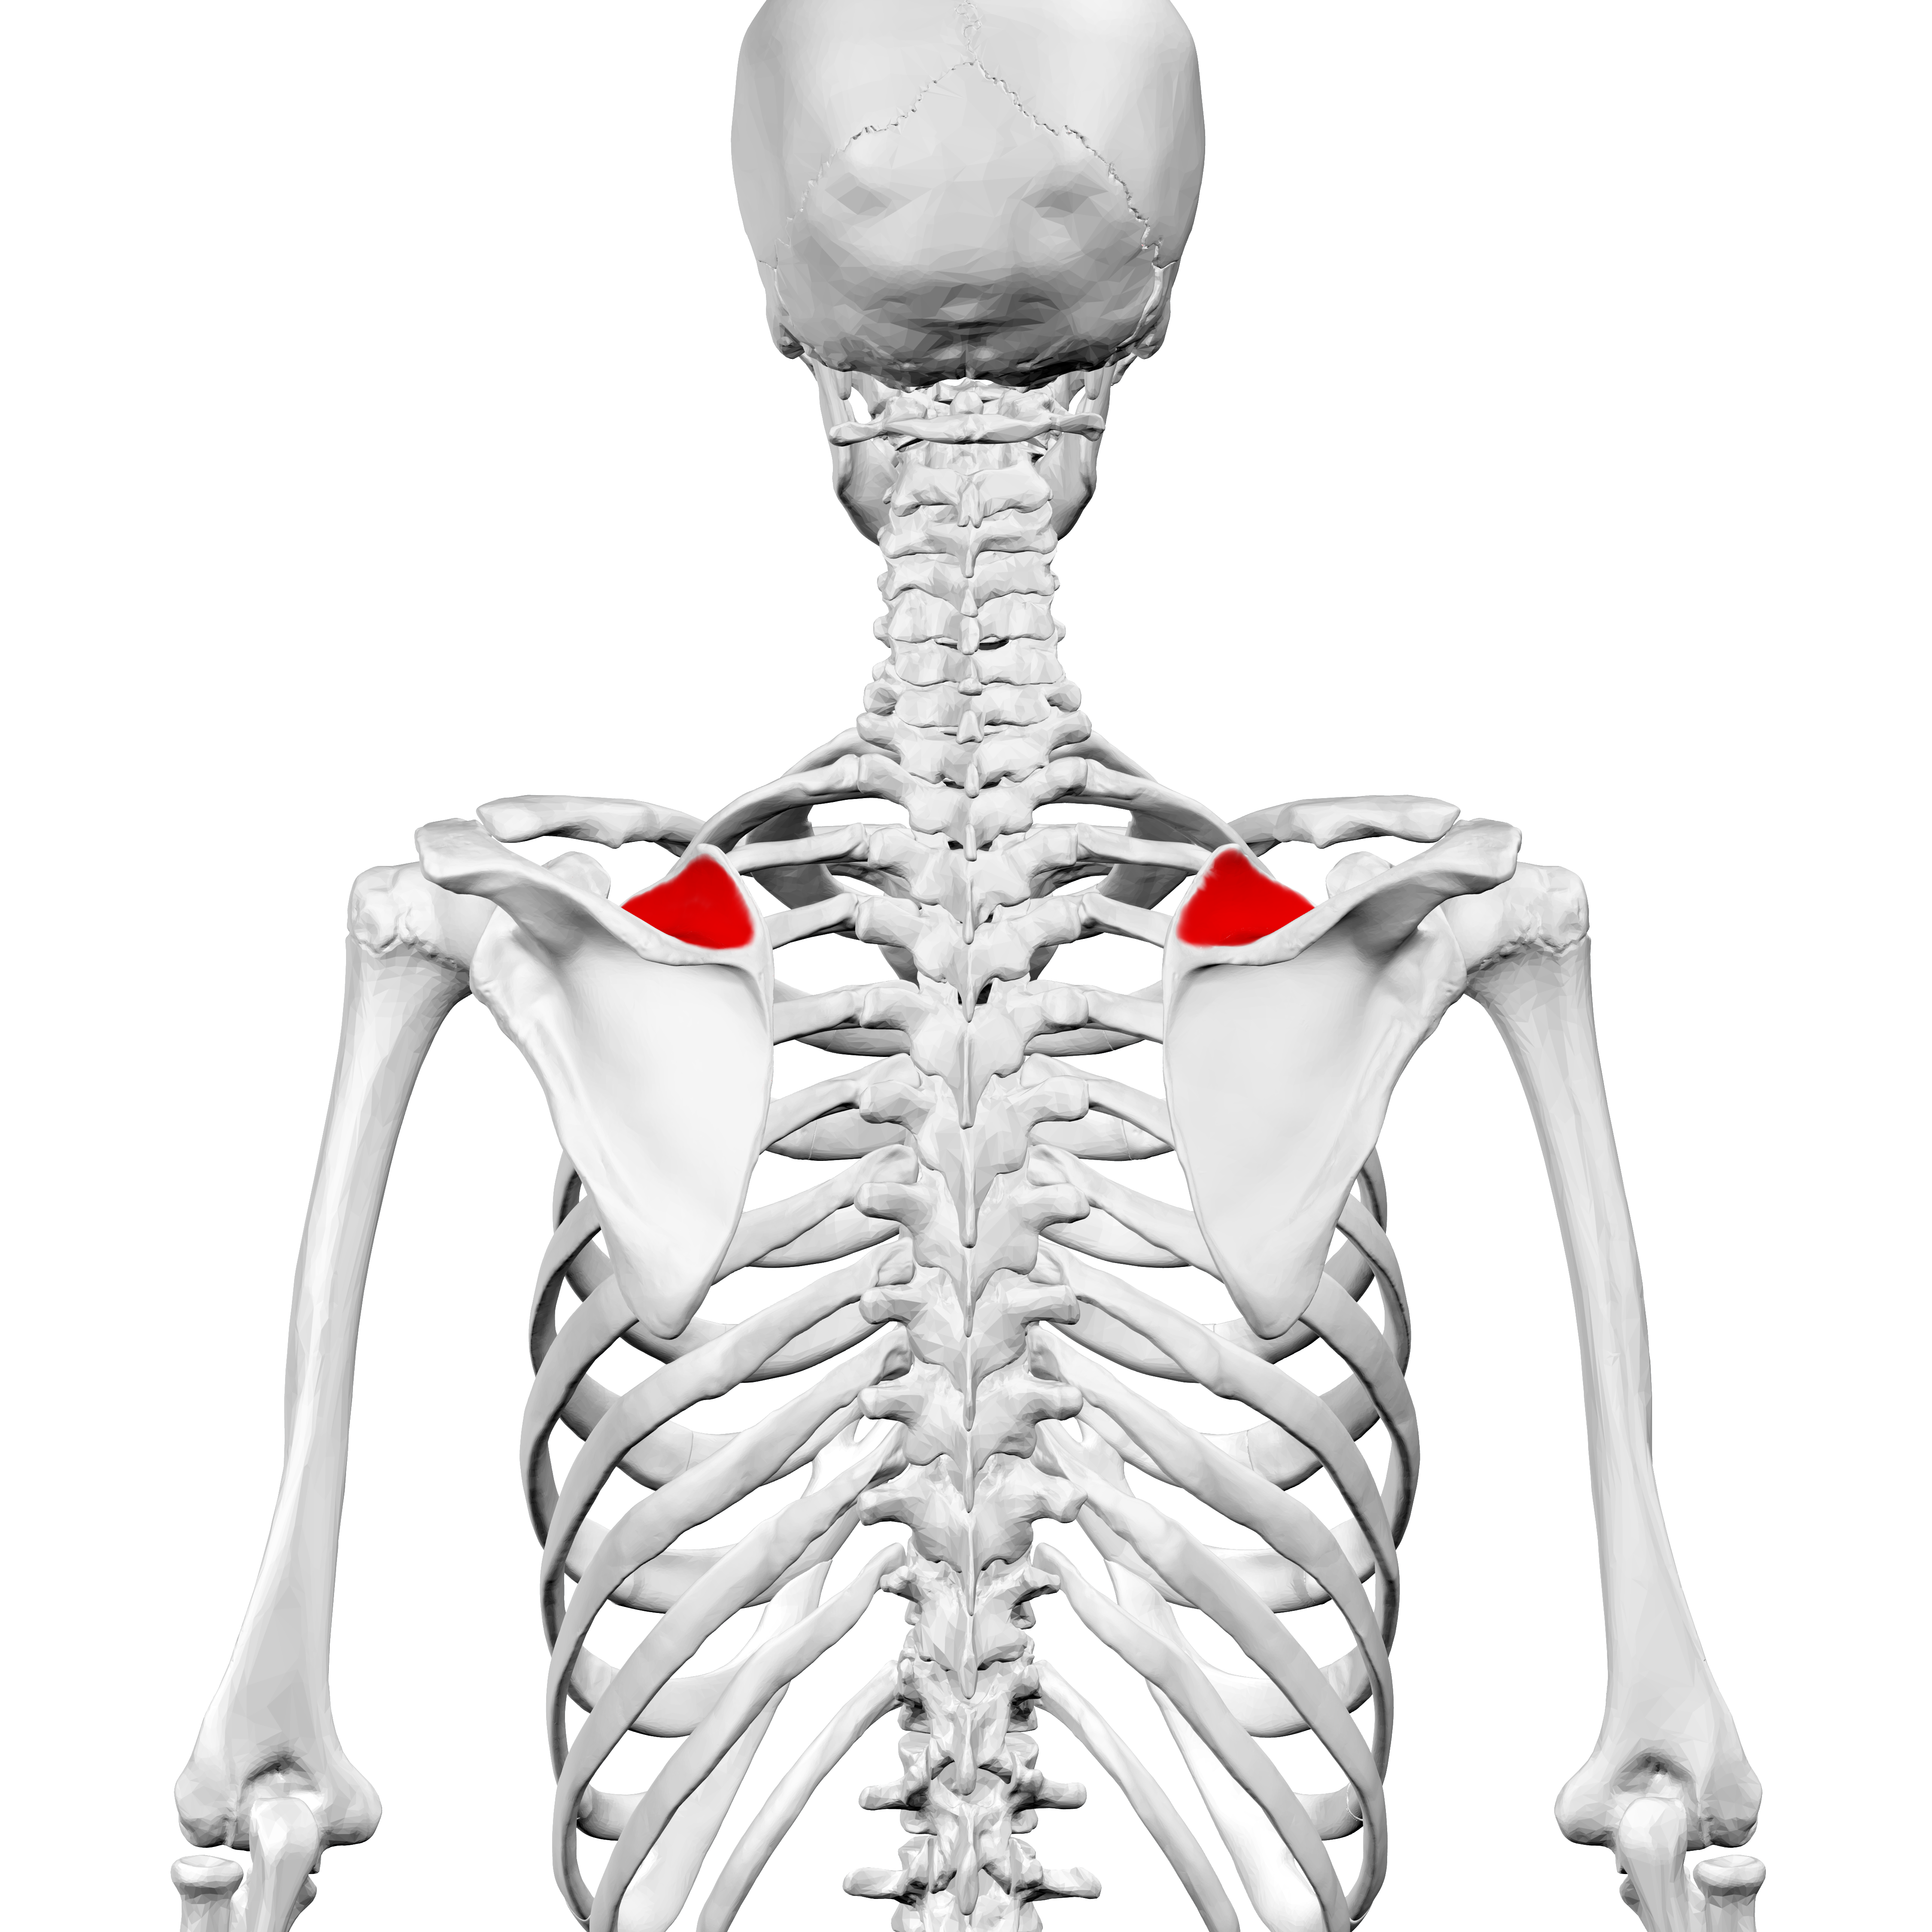 File:Supraspinous fossa of scapula04.png